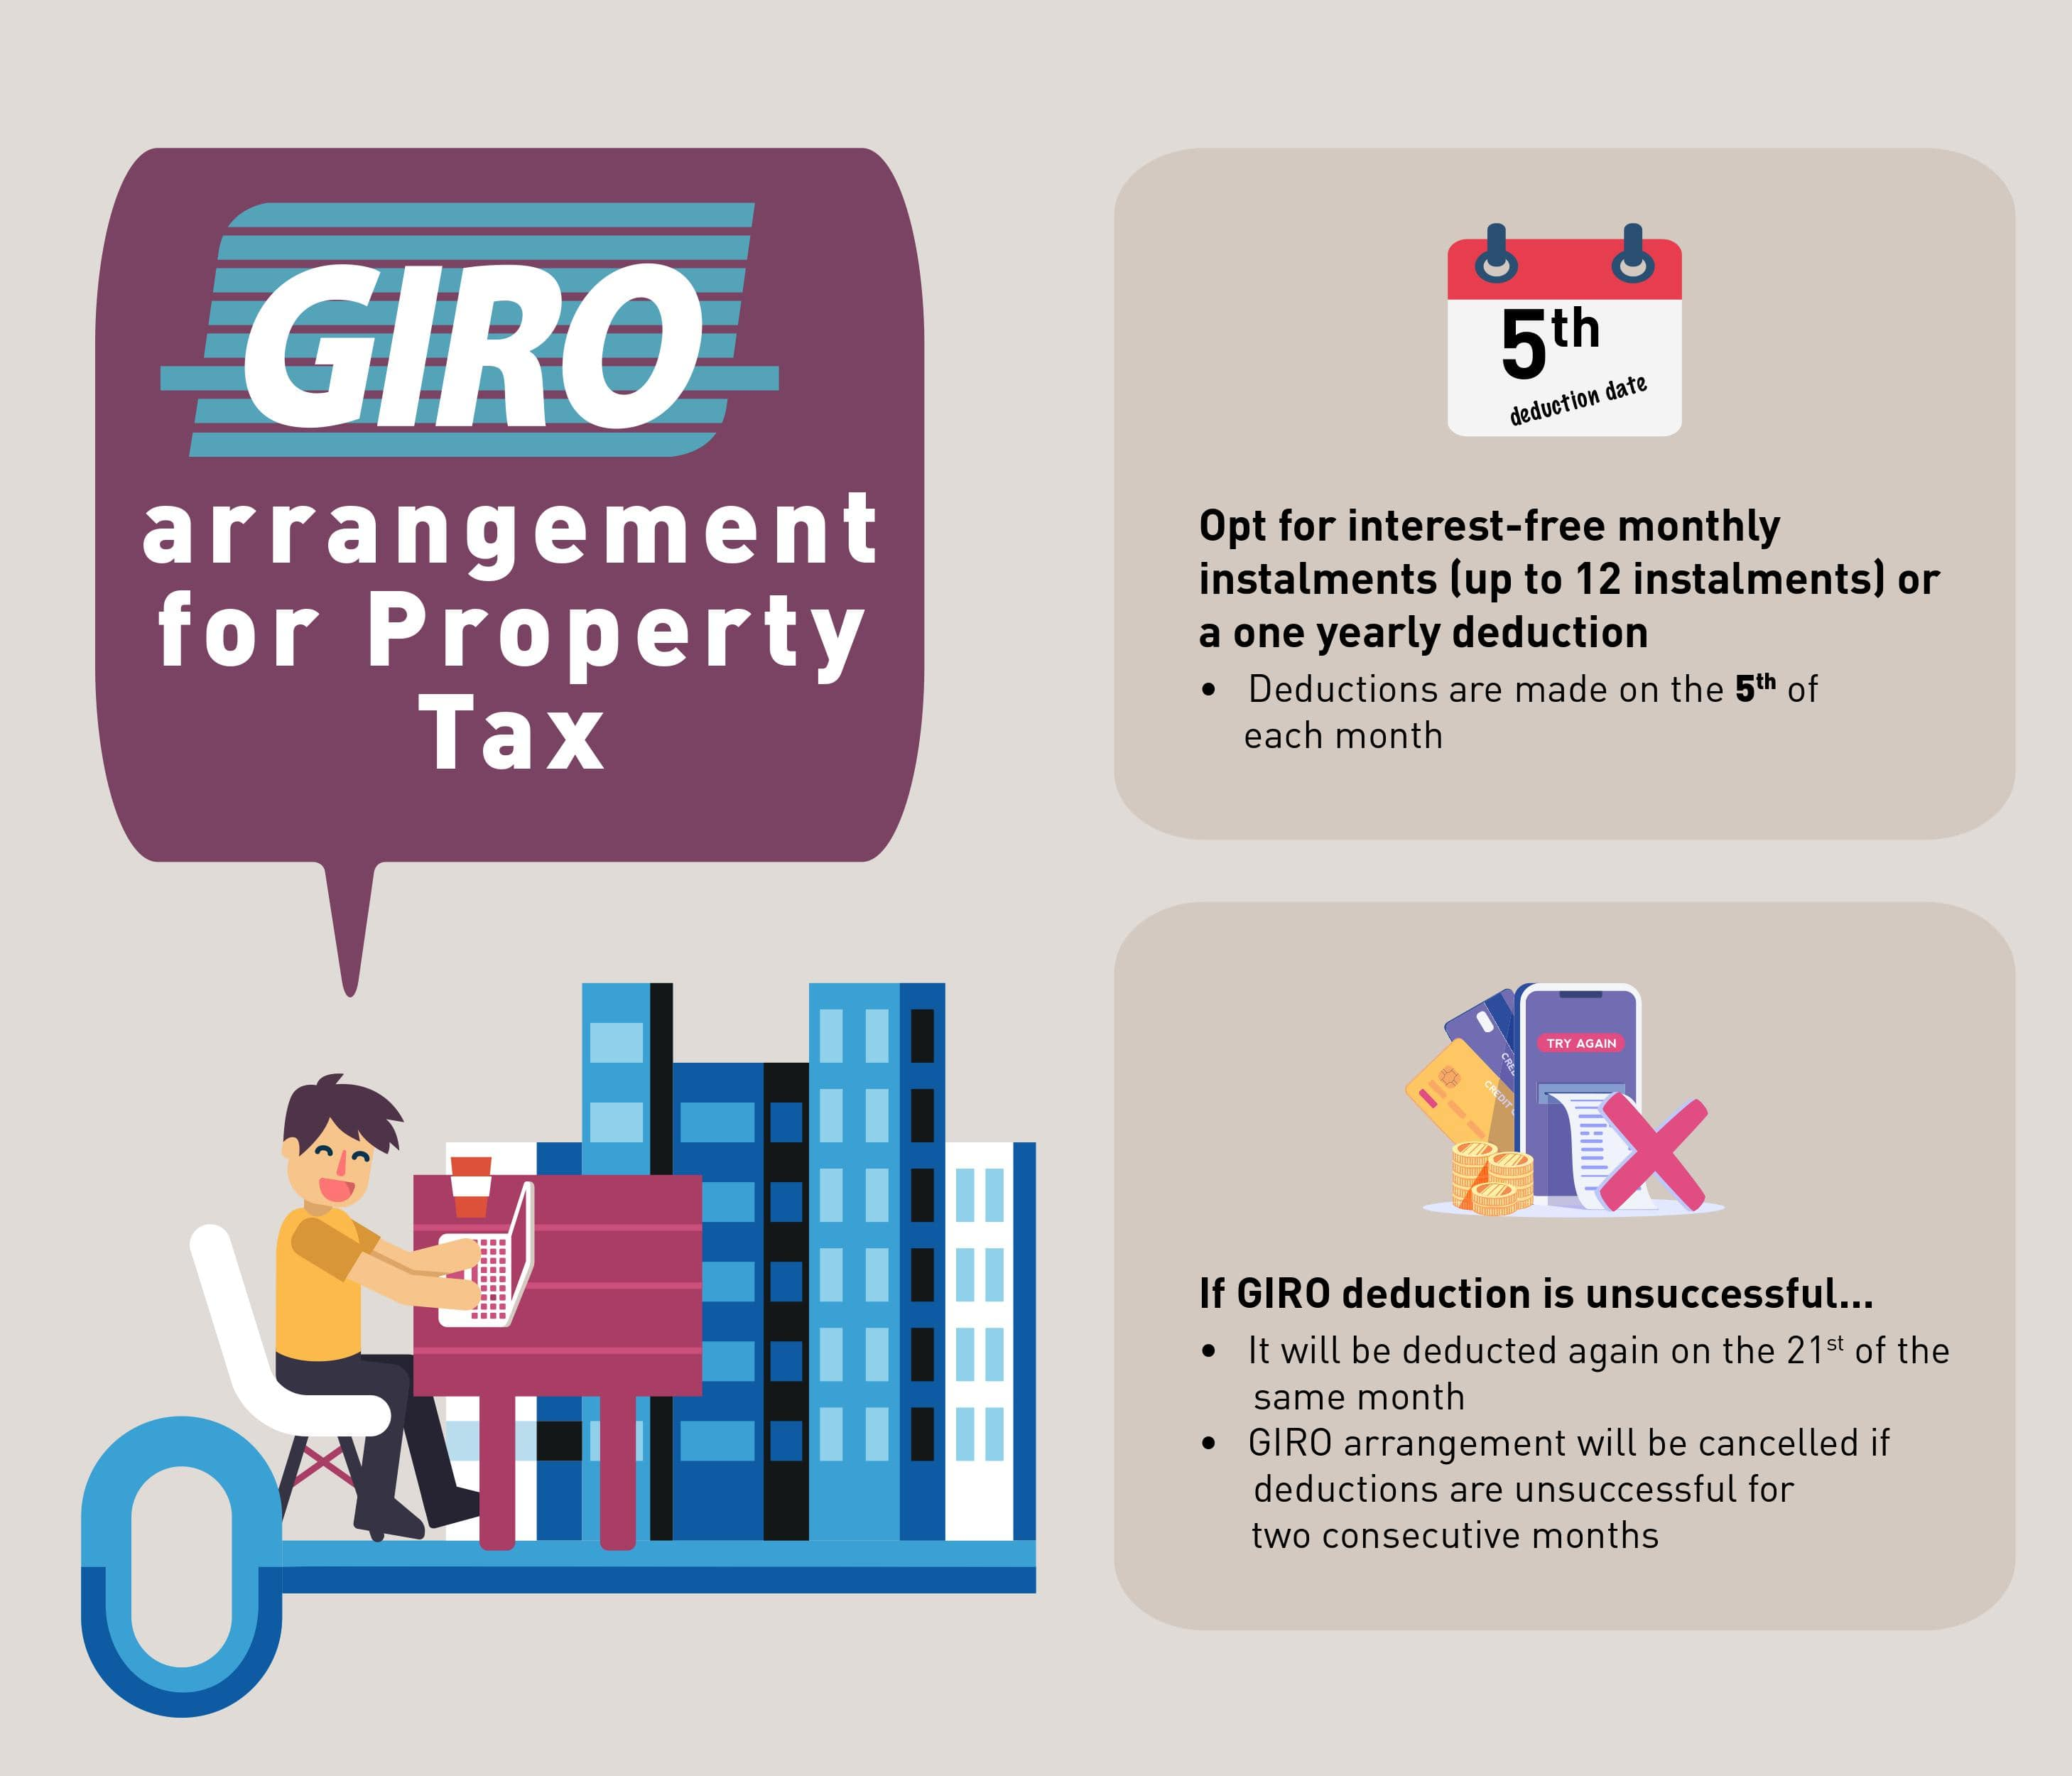 GIRO arrangement for Property Tax